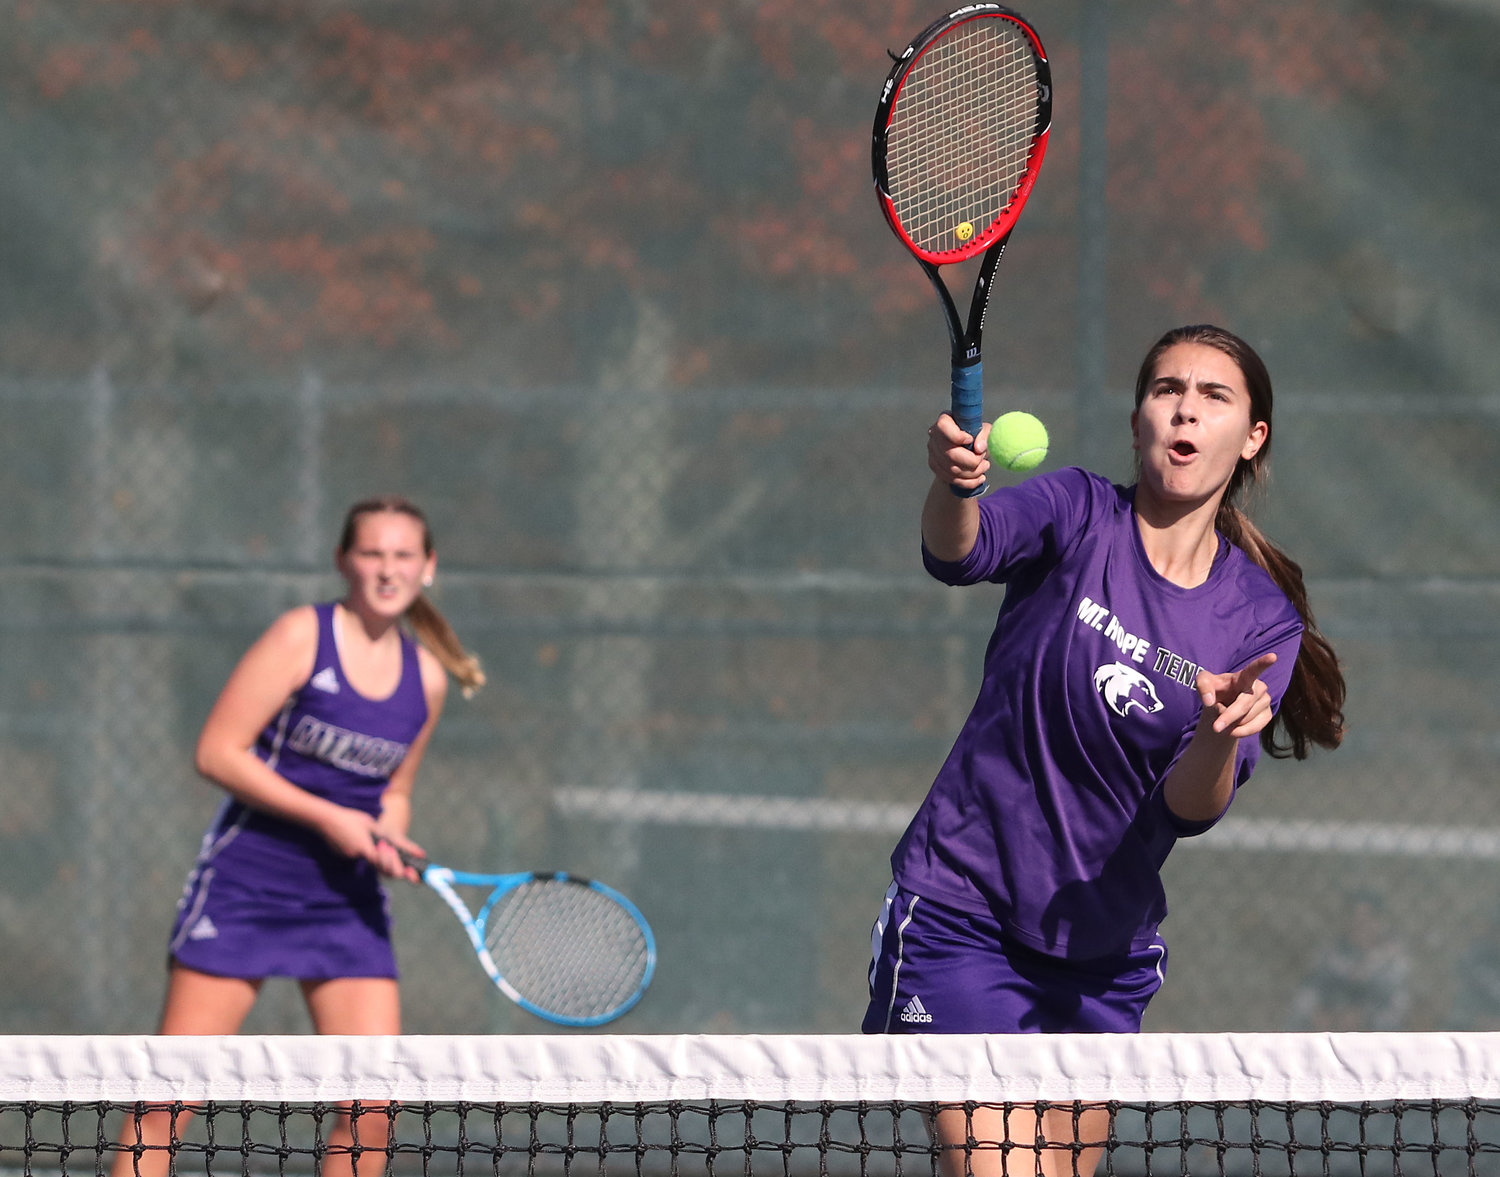 Marisa Astrologo (right) hits a winner from her position at the net with No. 2 doubles team partner Catherine